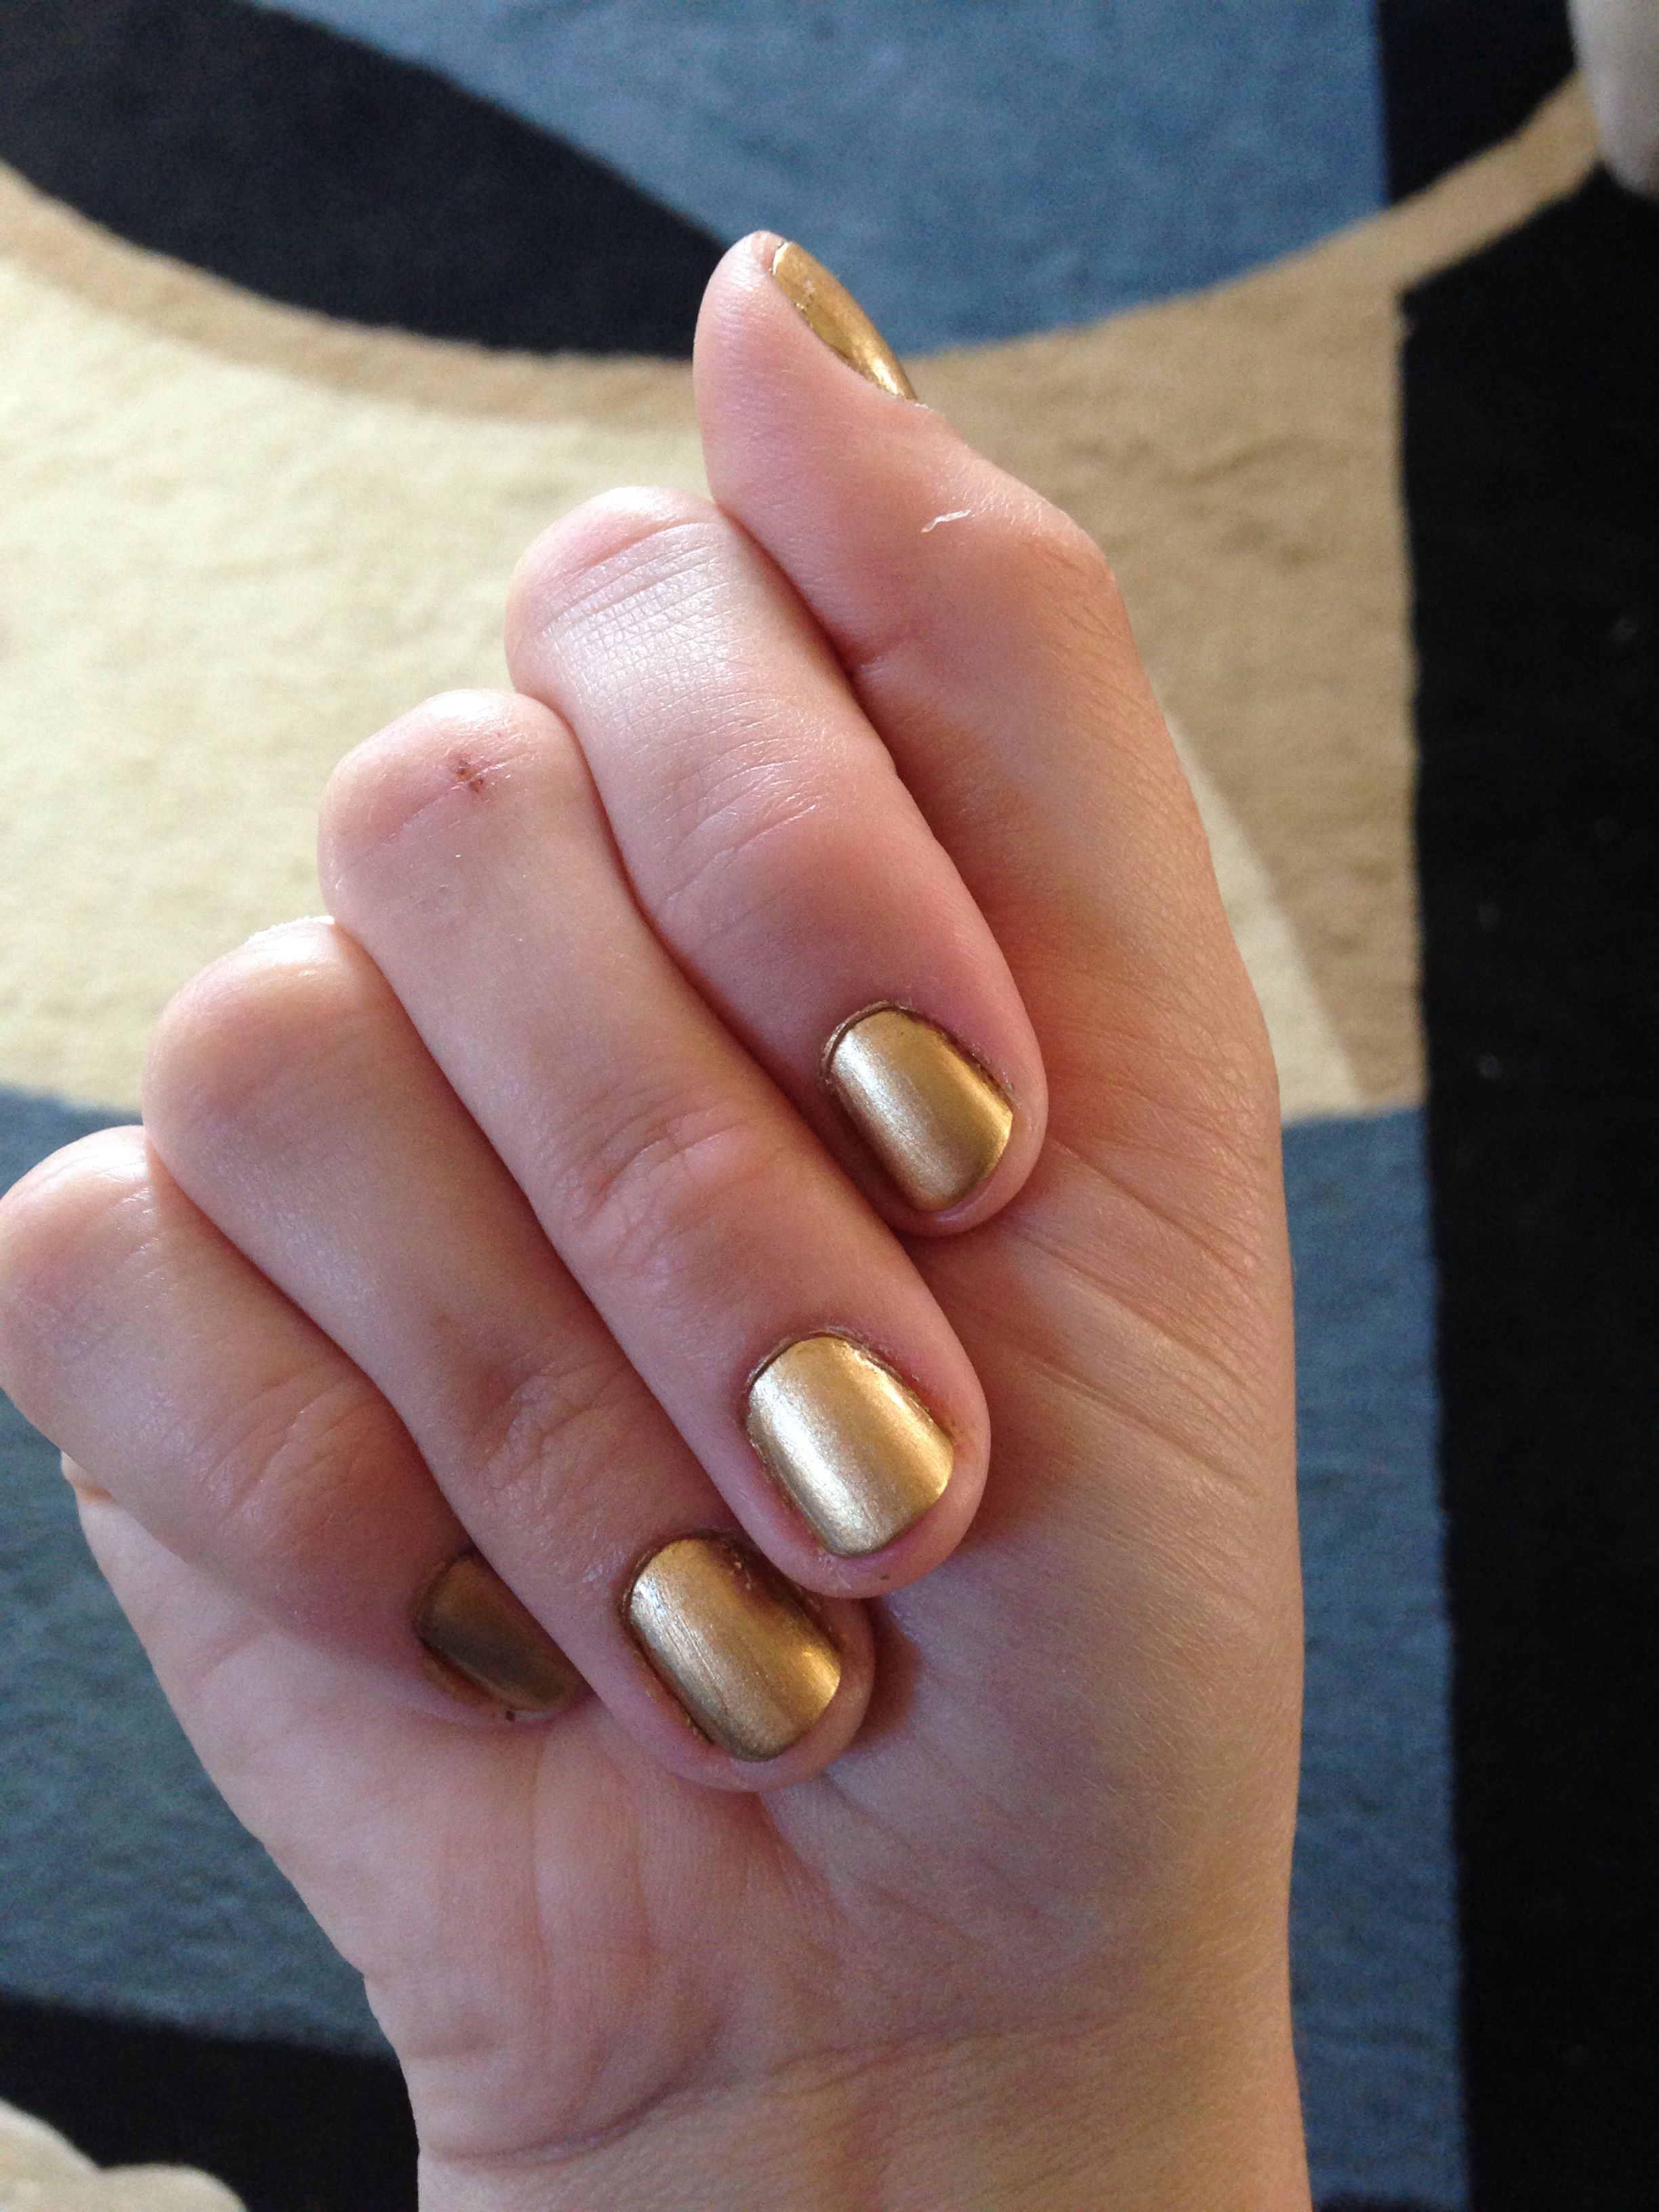 Midas Jamberry Lacquer!   Jamberry   Pinterest   Jamberry lacquer ...